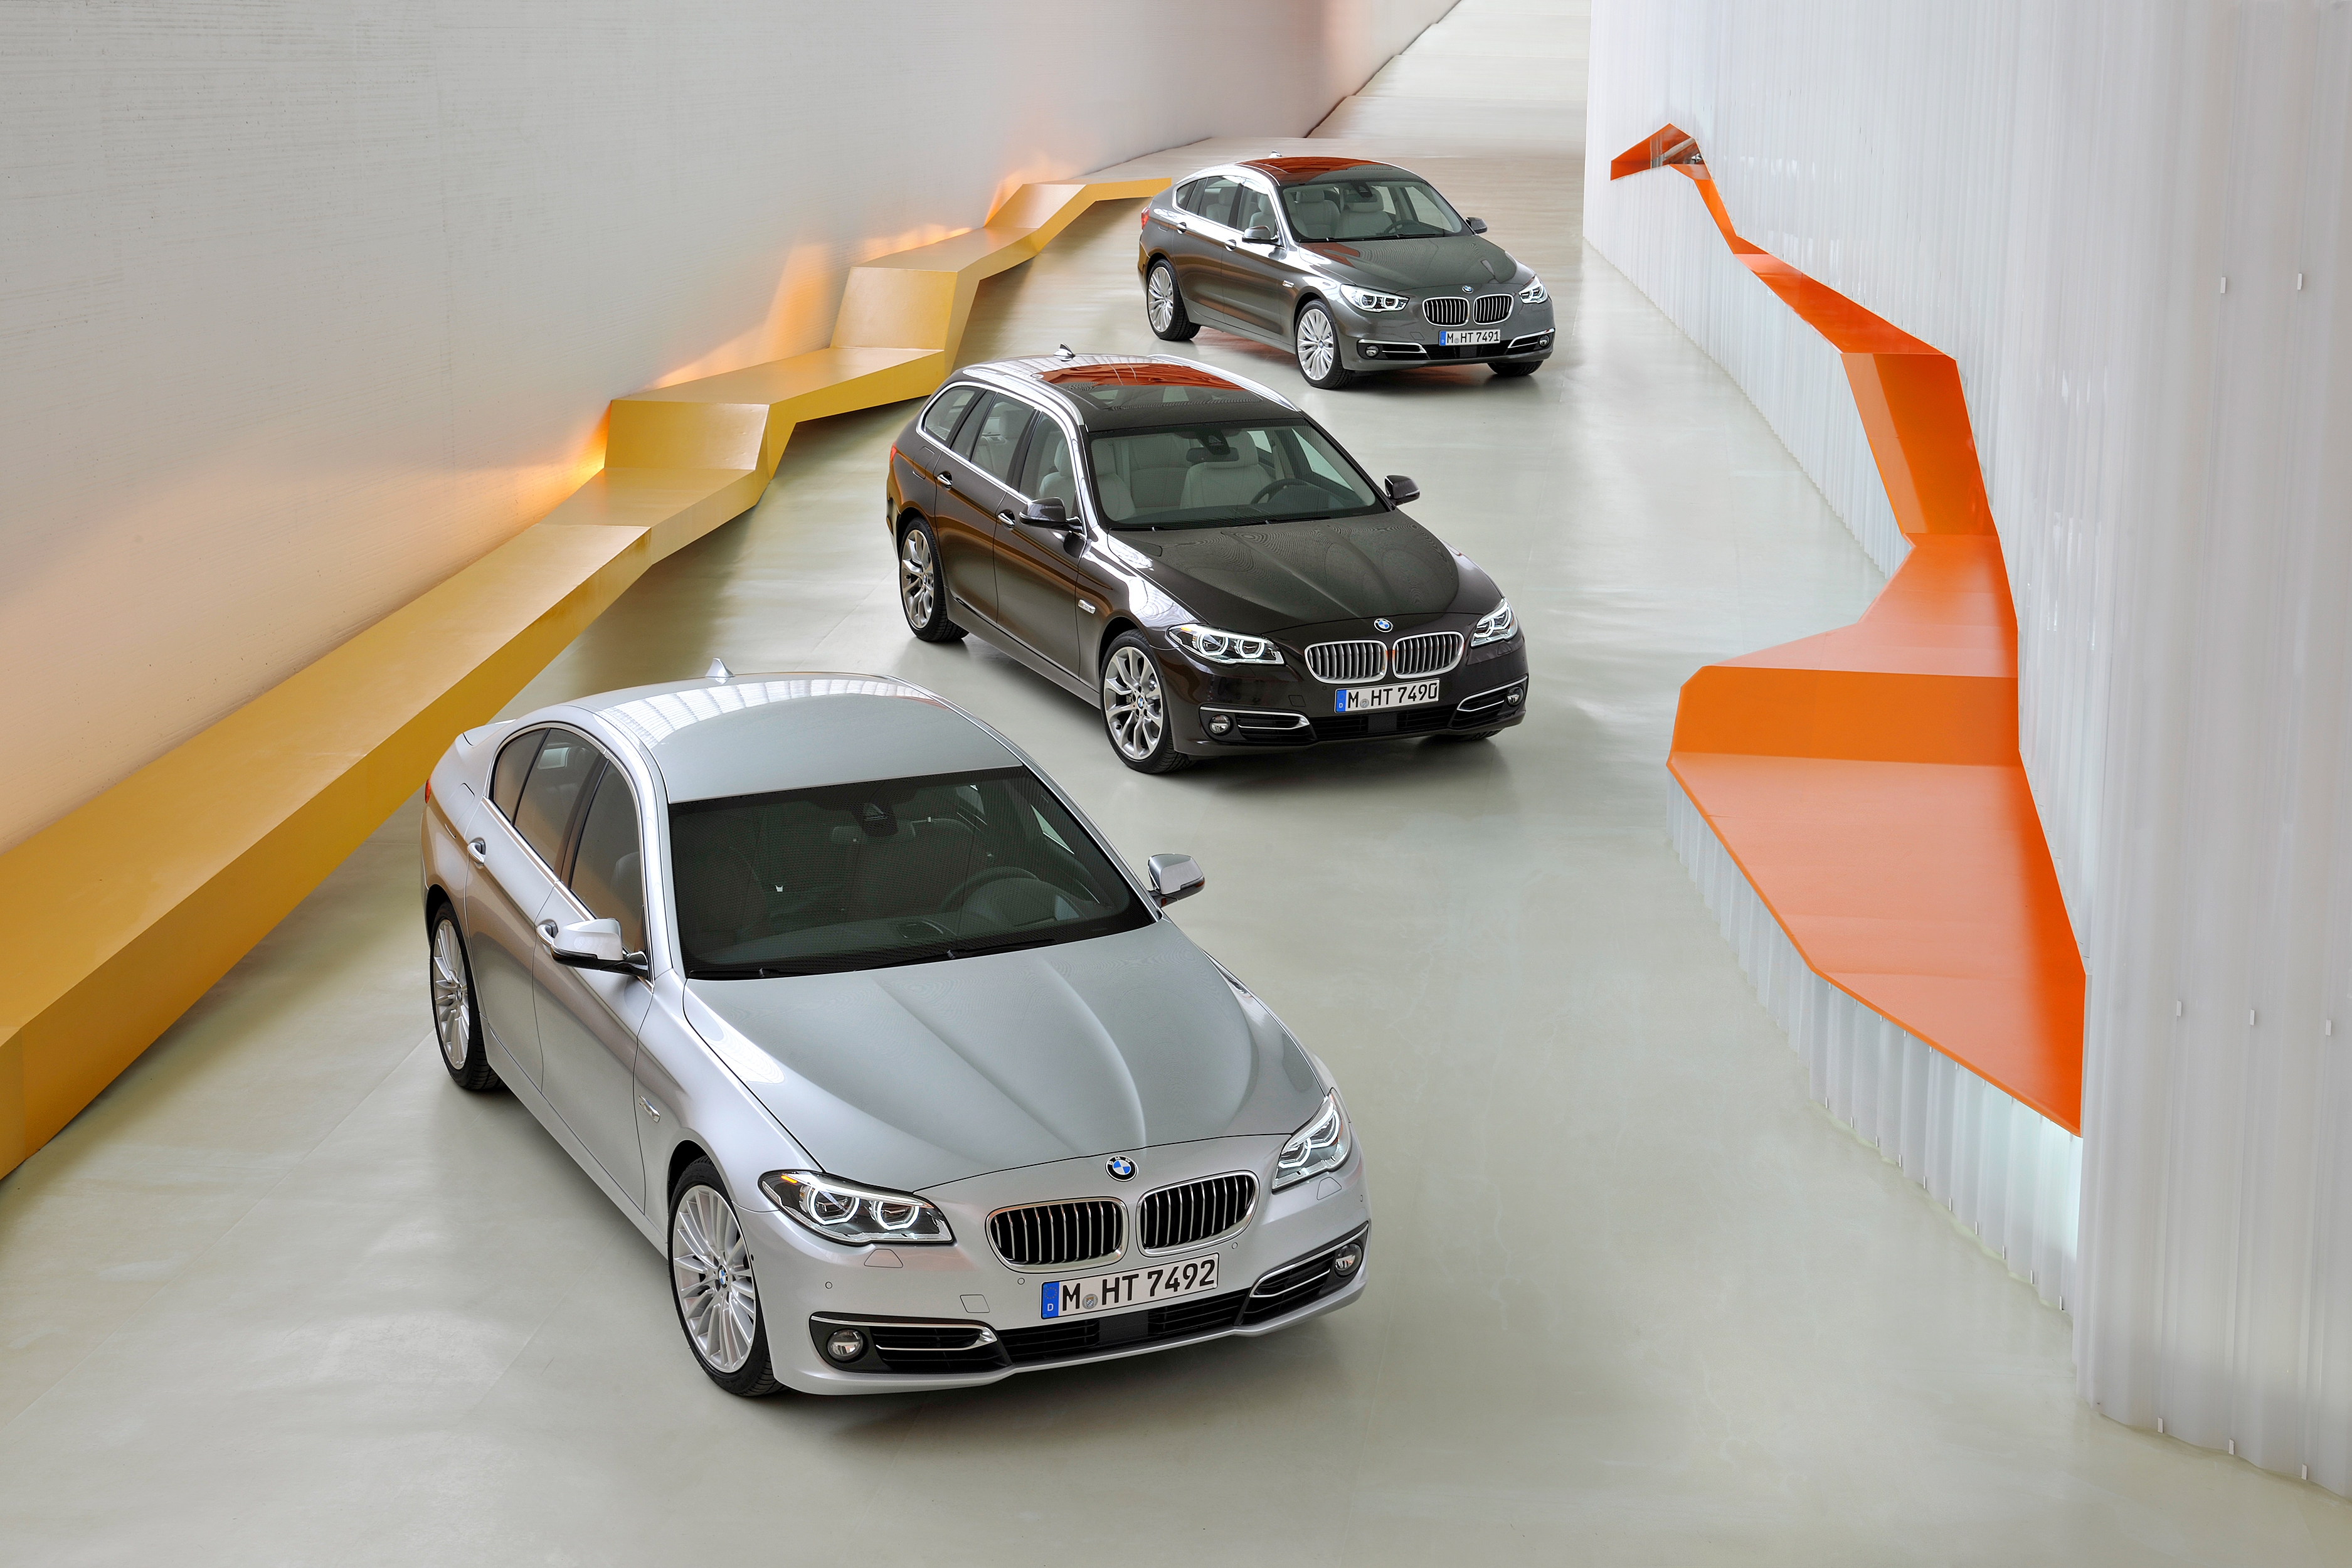 bmw wallpaper (BMW 5 Series)